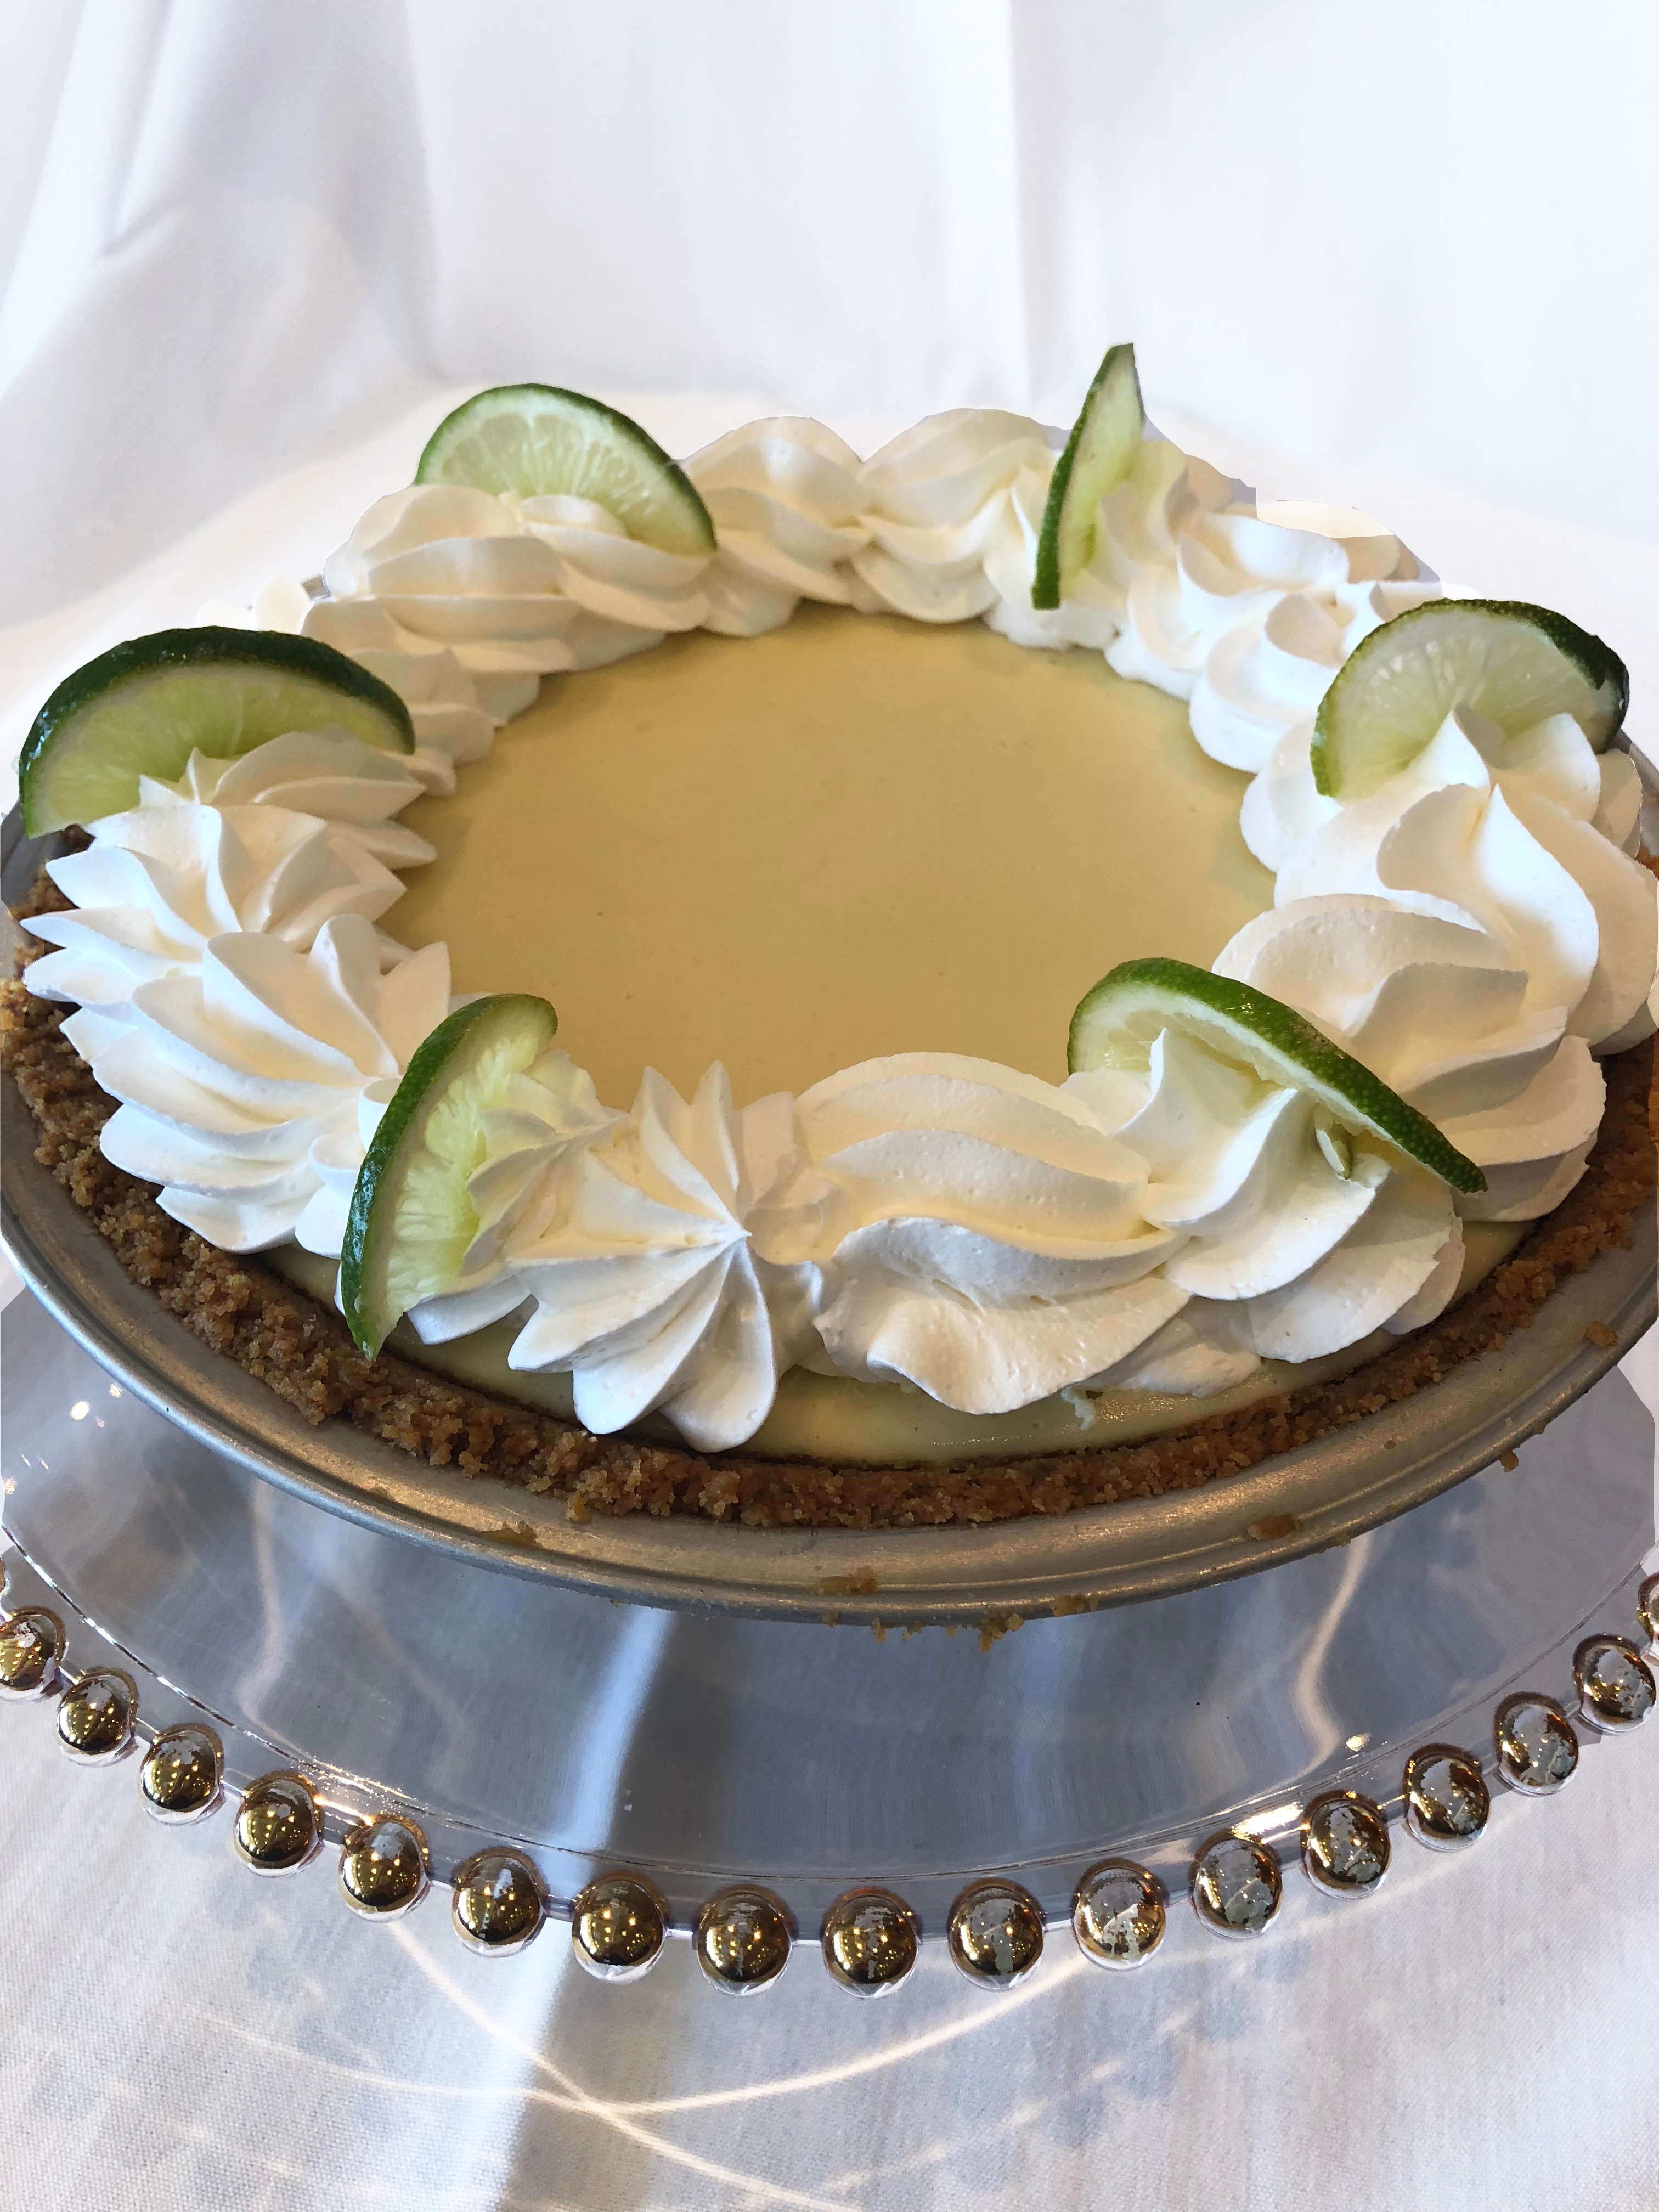 Whole Key Lime Pie Image